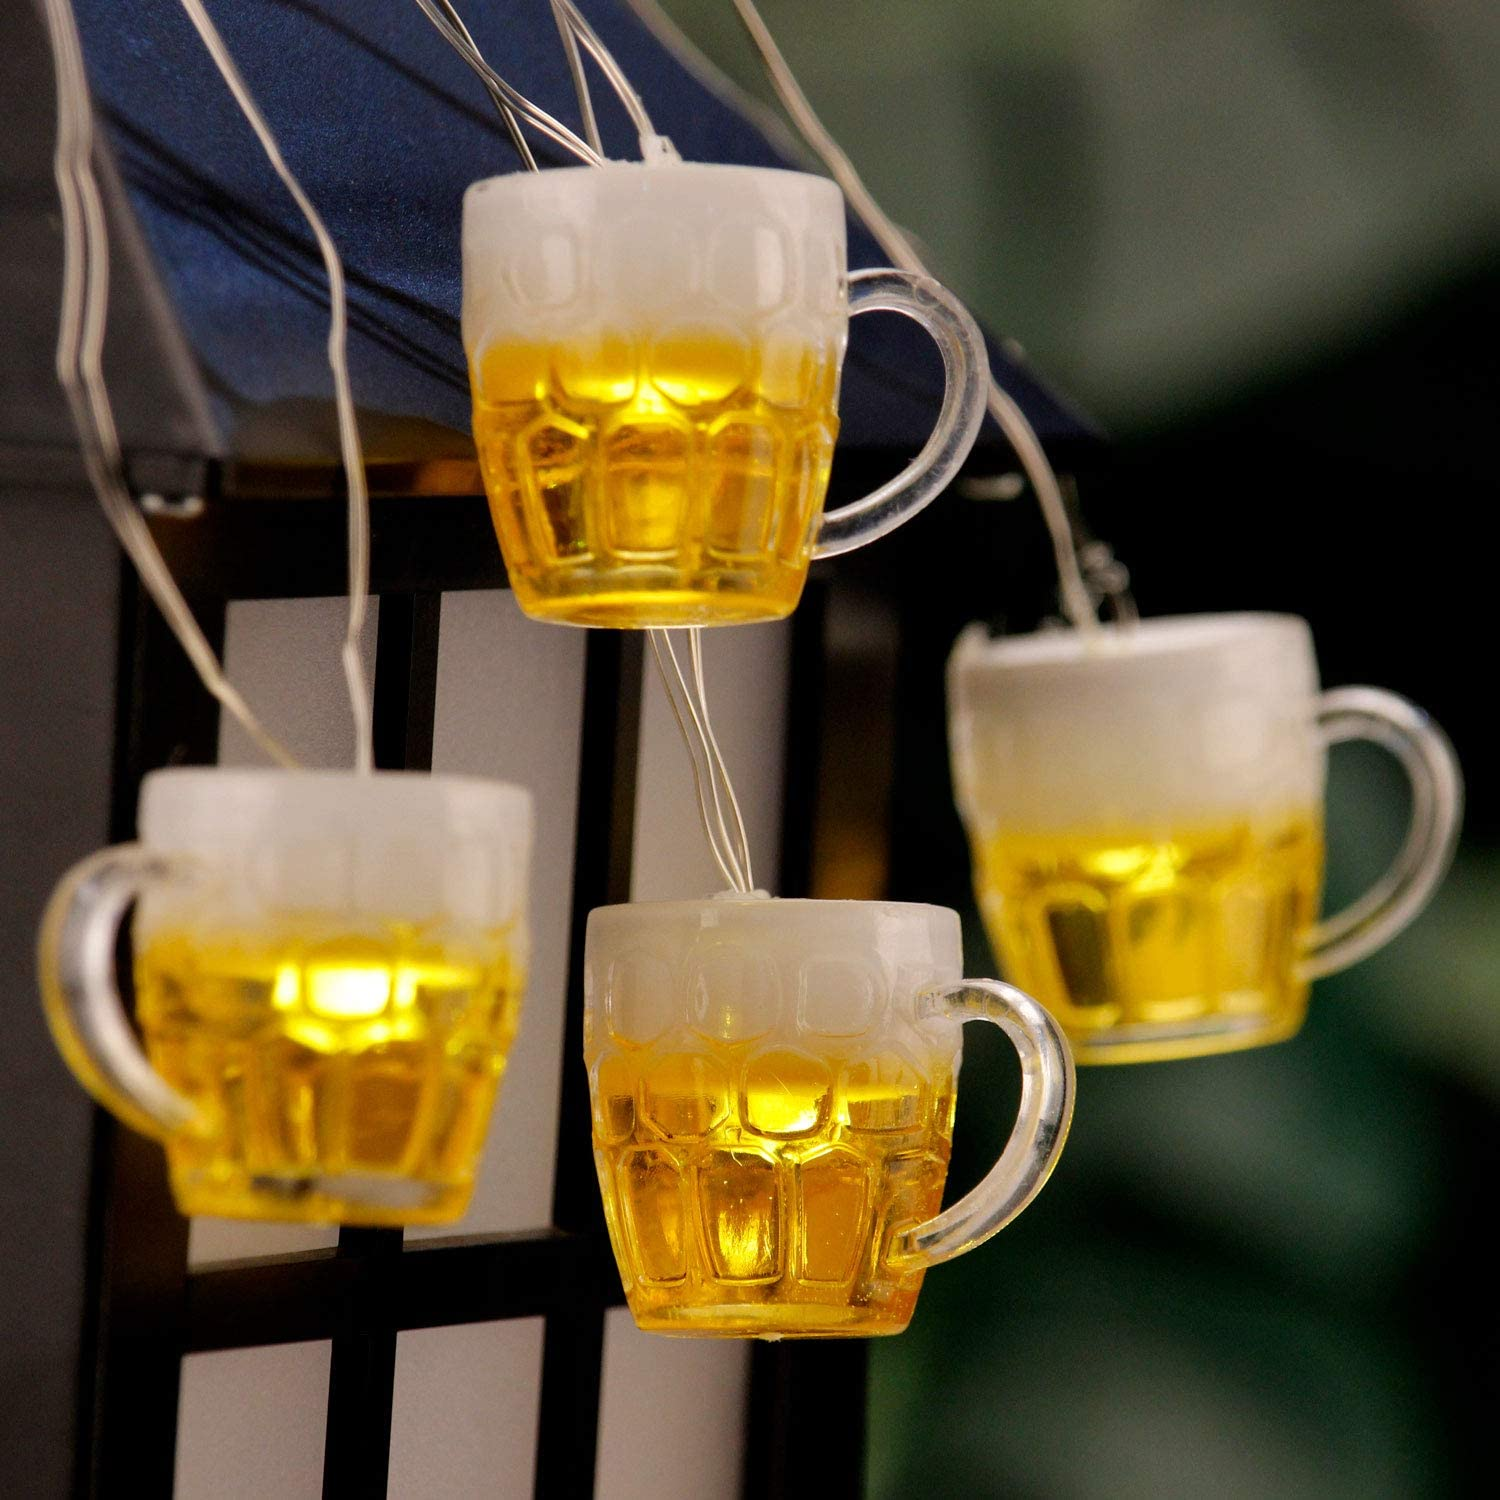 3D Beer Mug String Lights St Patrick's Day Decor, 10ft 15 LED with Remote Control USB & Battery Powered for Bar Christmas Birthday Wedding Party Bedroom Dorm Wreath Summer Club Decorations